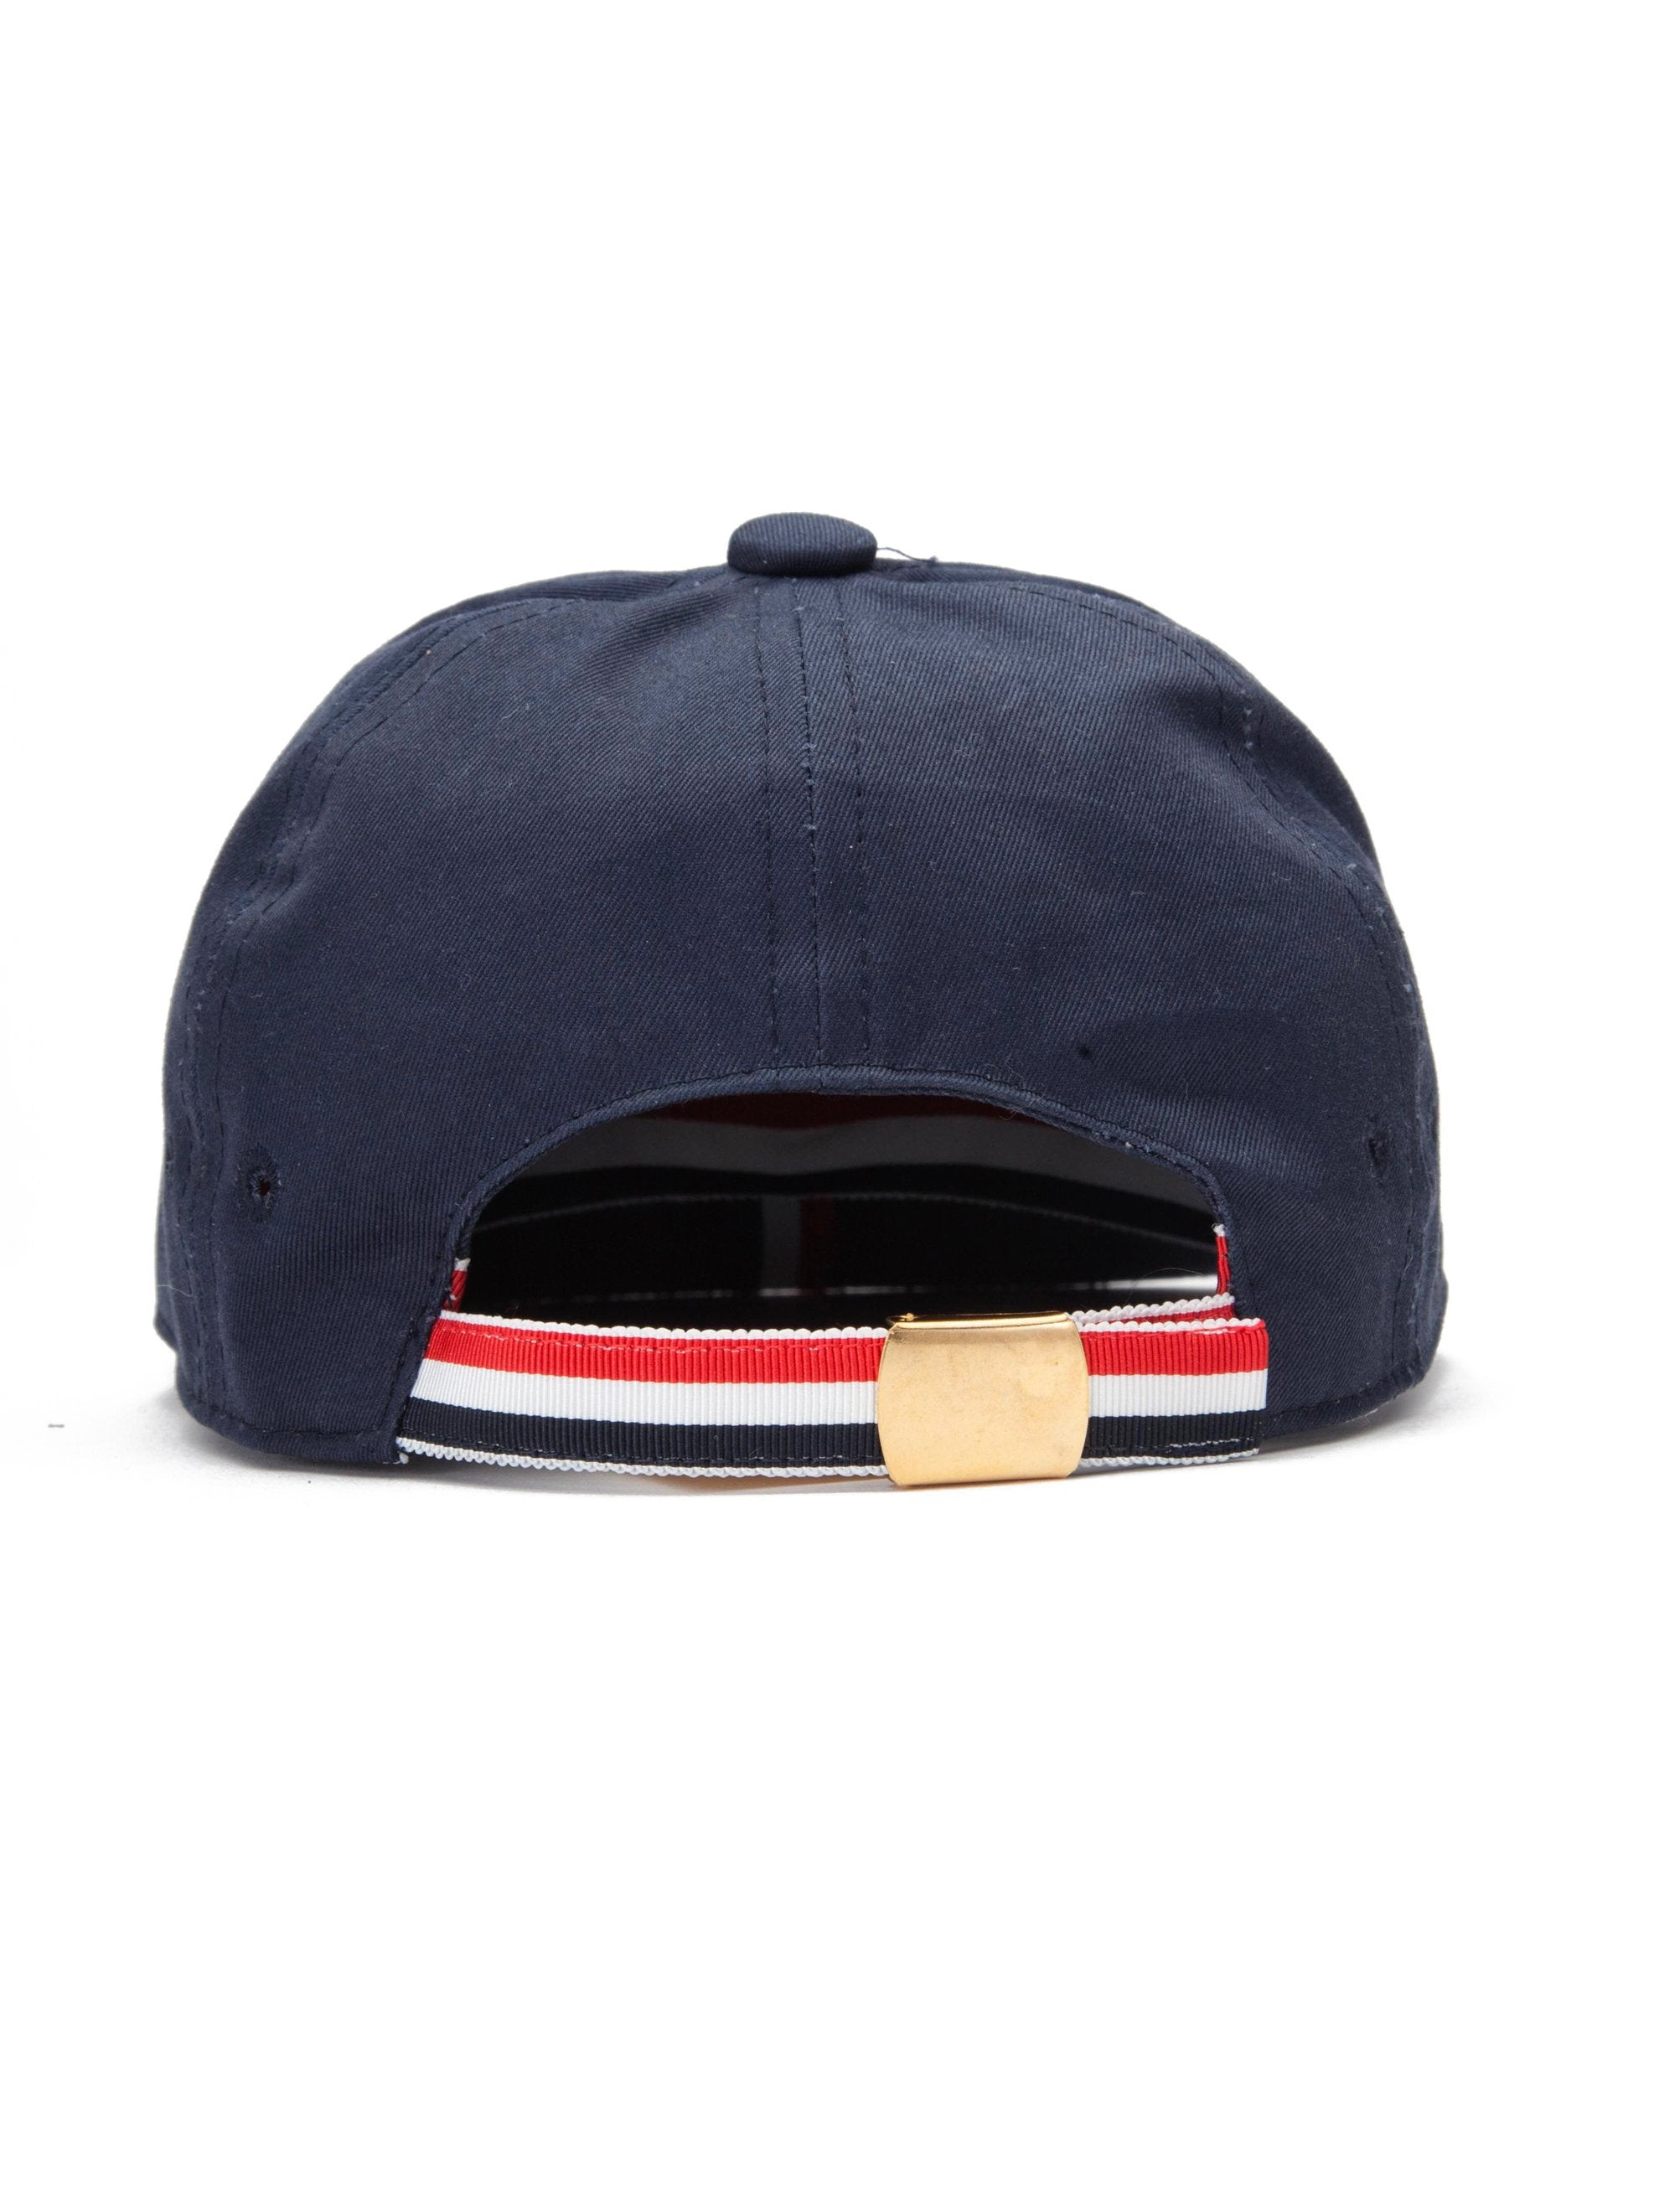 Navy 6-Panel Baseball Cap (RWB Seam Tape/Cotton Twill) 3